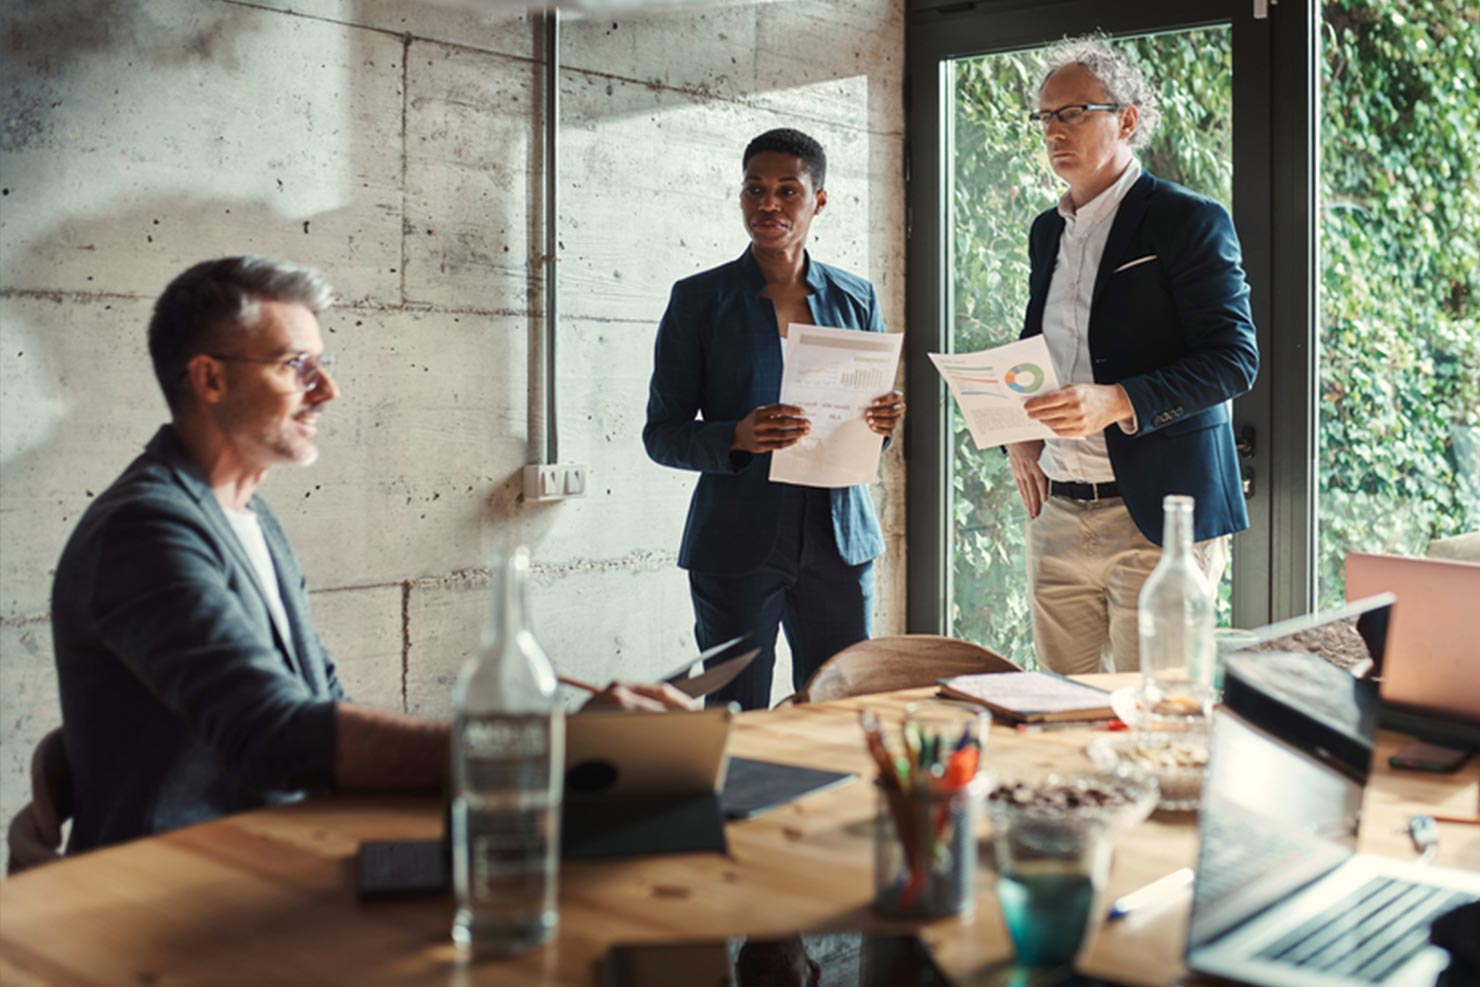 Business leaders overcoming productivity challenges in a meeting